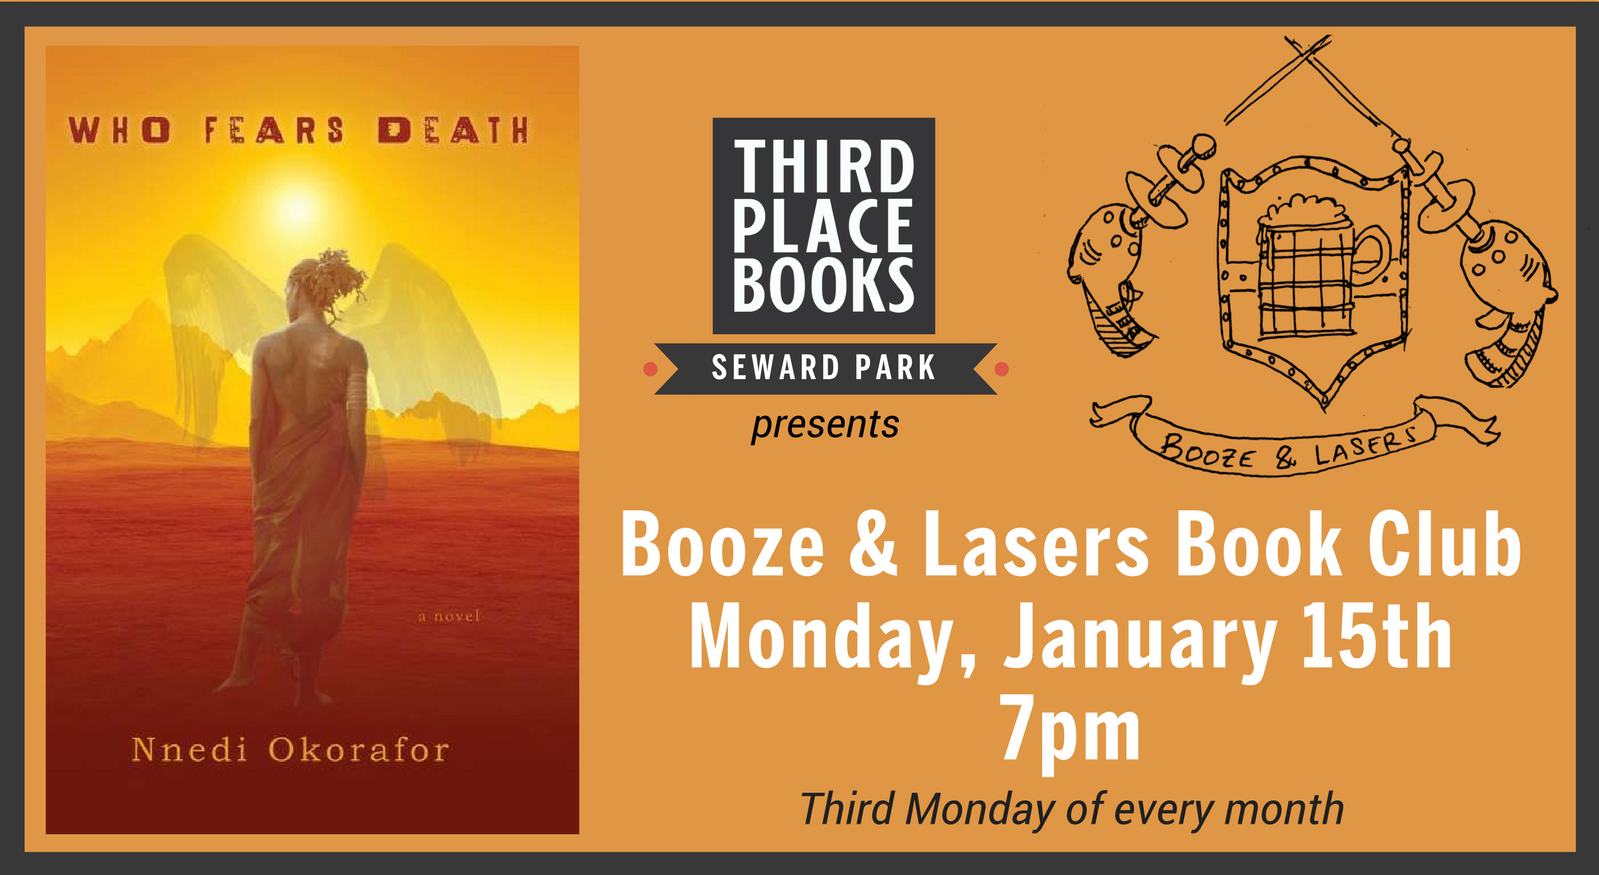 Booze and Lasers Book Club reading Who Fears Death